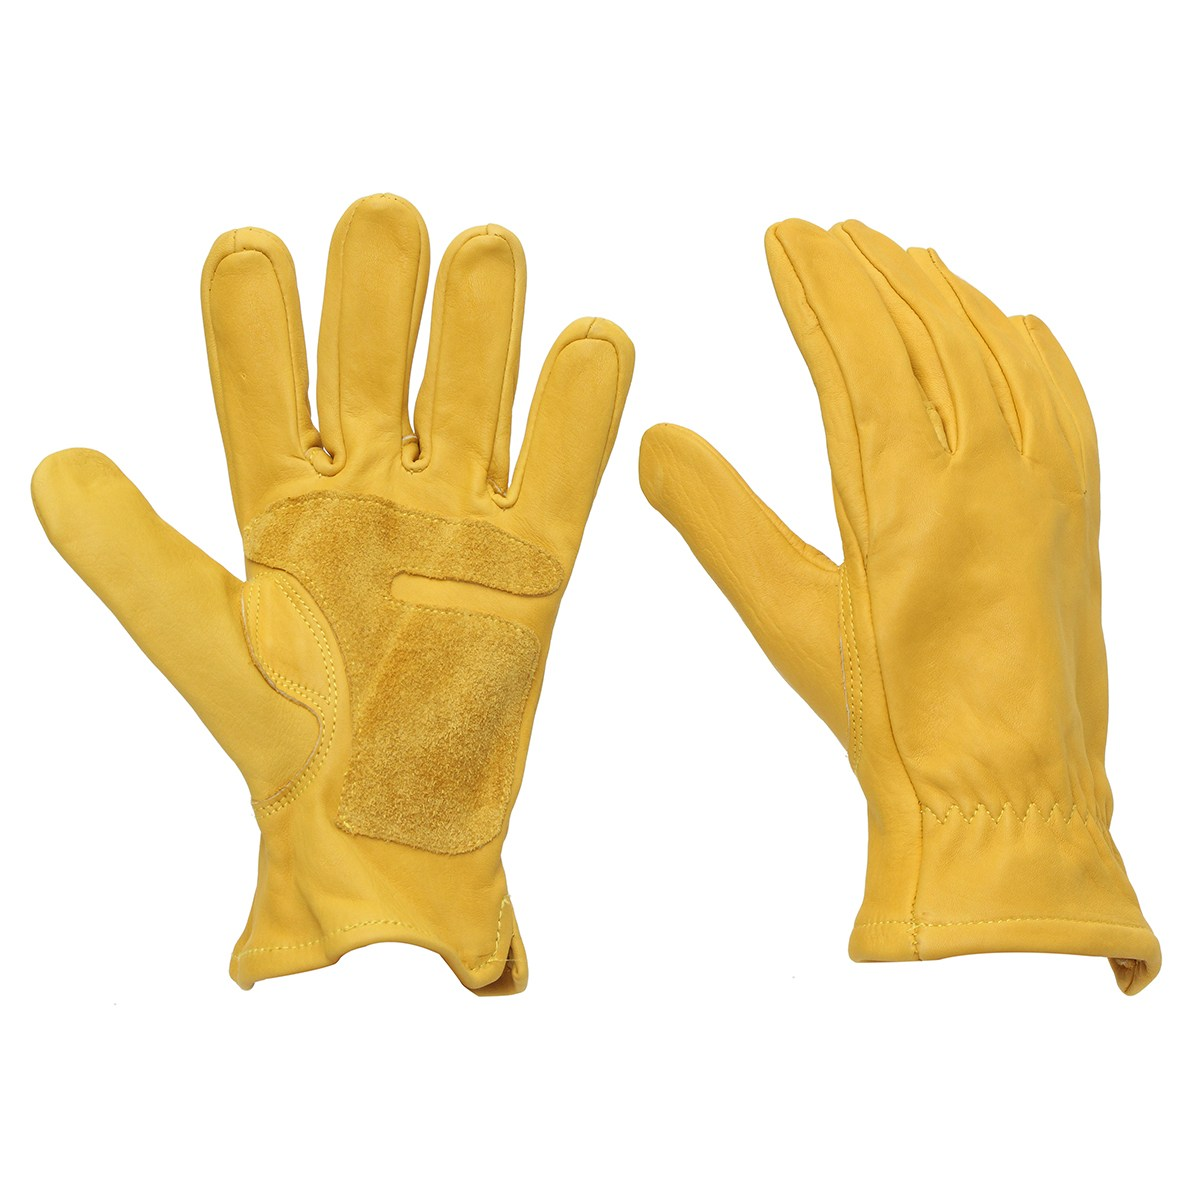 Safurance 1 Pair Leather Yellow Gloves M L XL XXL Workplace Safety  Working Welding Warm Gloves Protection new safurance pro tree carving fall protection rock climbing equip gear rappelling harness workplace safety